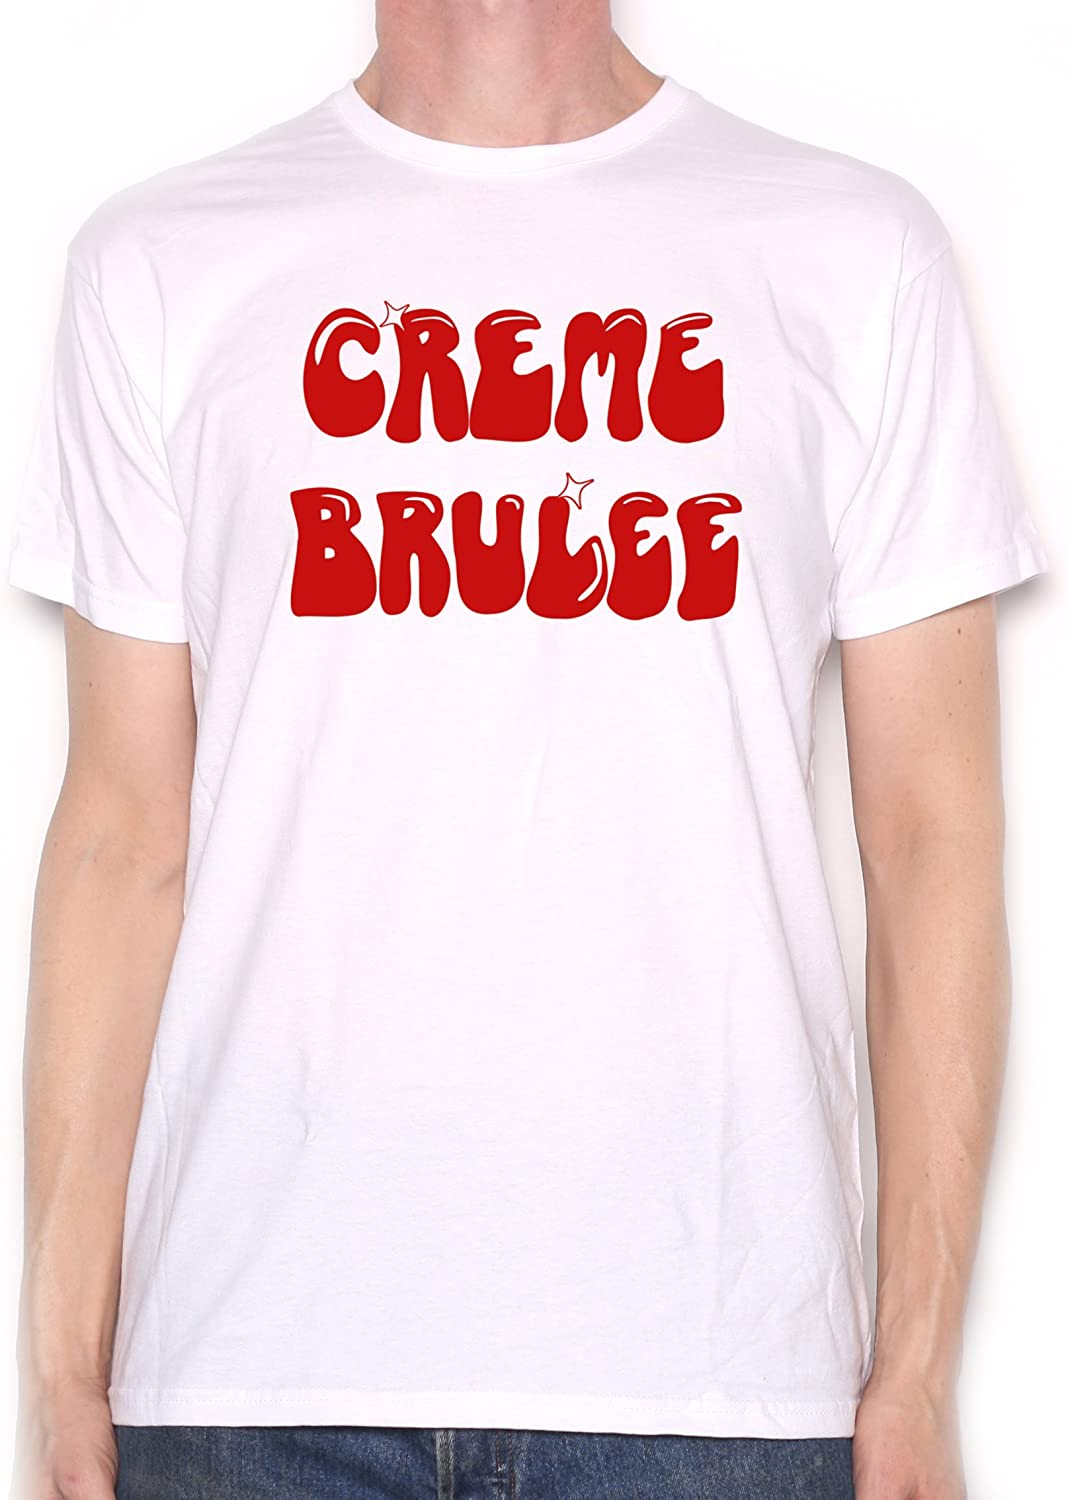 A Tribute To The League Of Gentlemen T Shirt Creme Brulee Cult TV Comedy Shirt